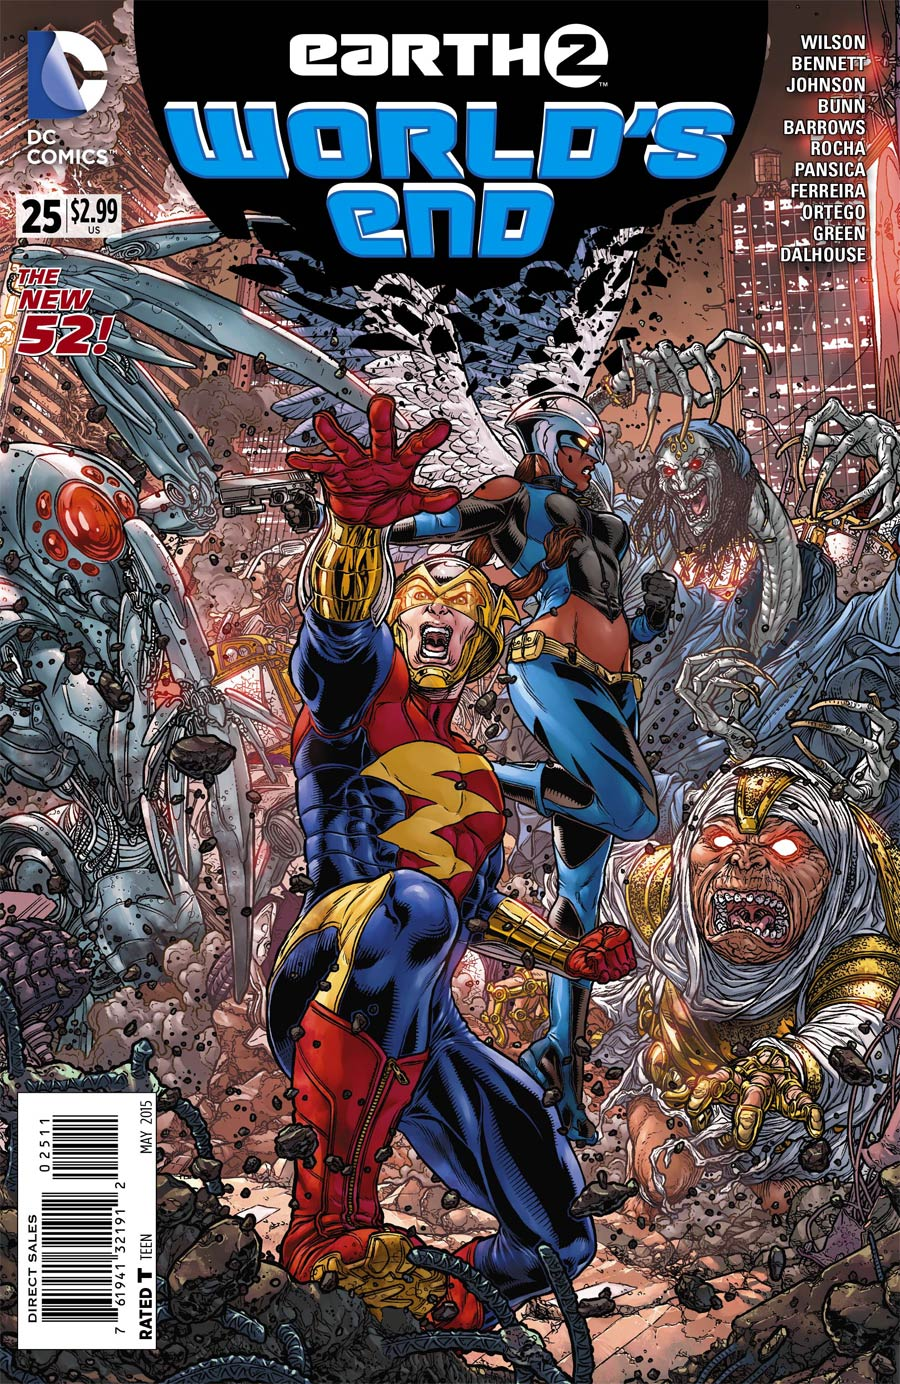 Earth 2 Worlds End #25